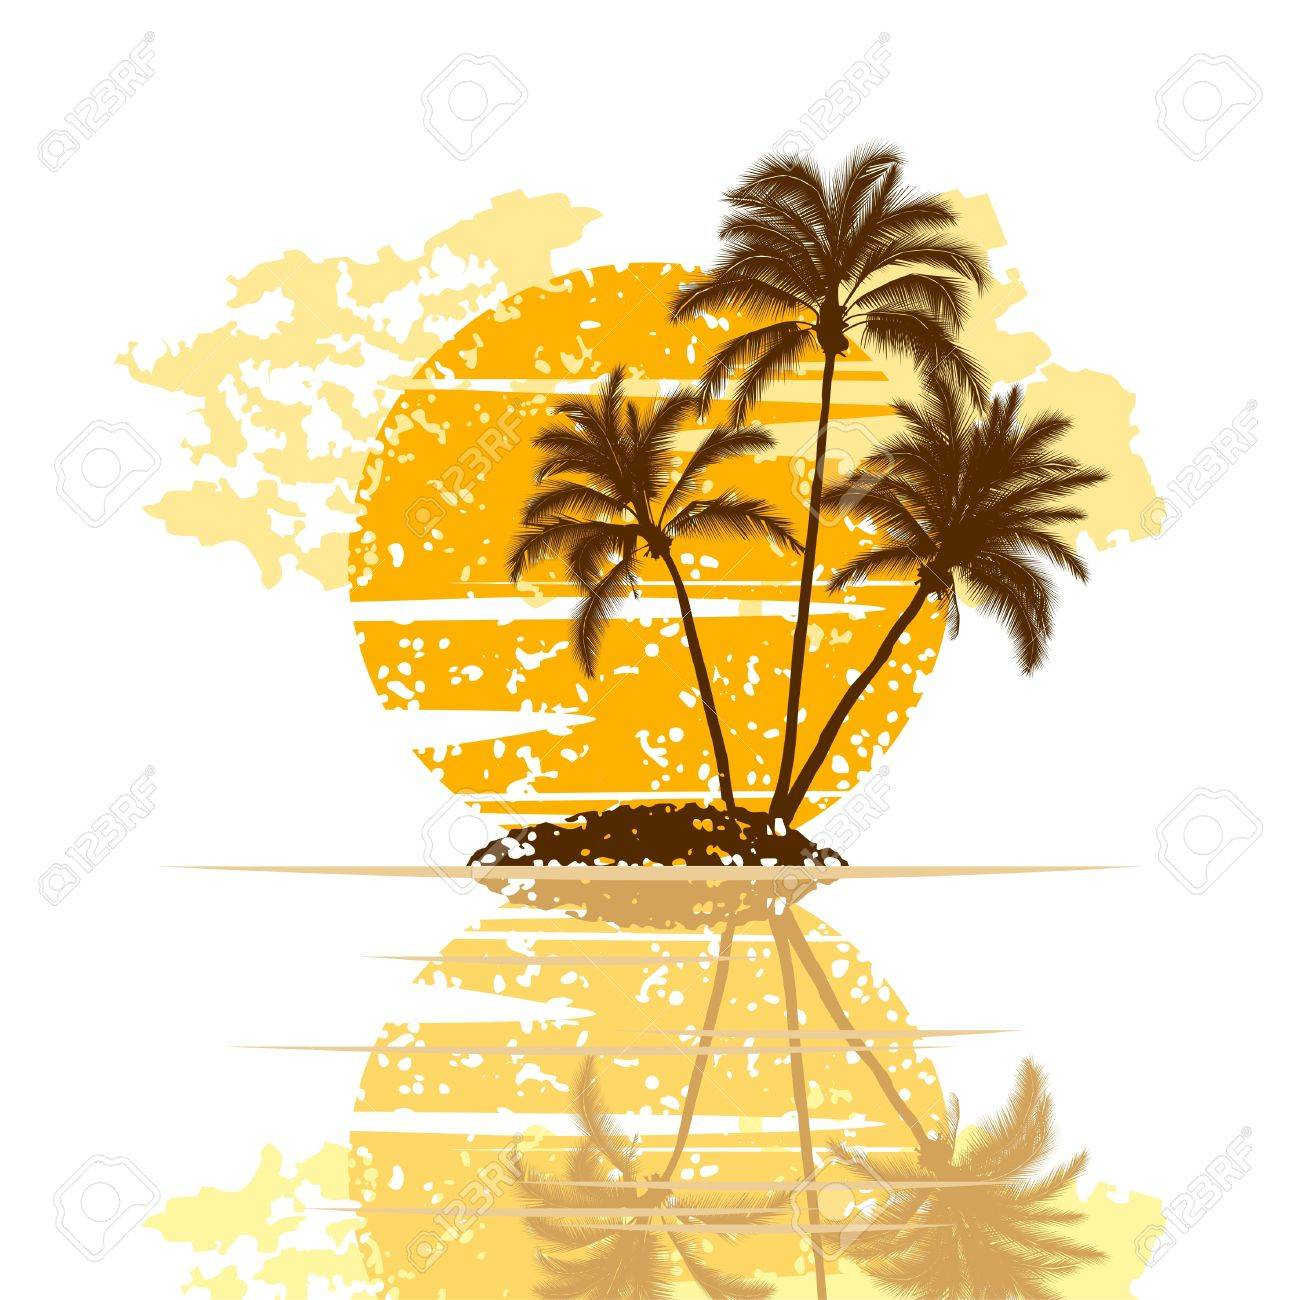 Sunset on island with palm trees on a white background Stock Vector - 9151771